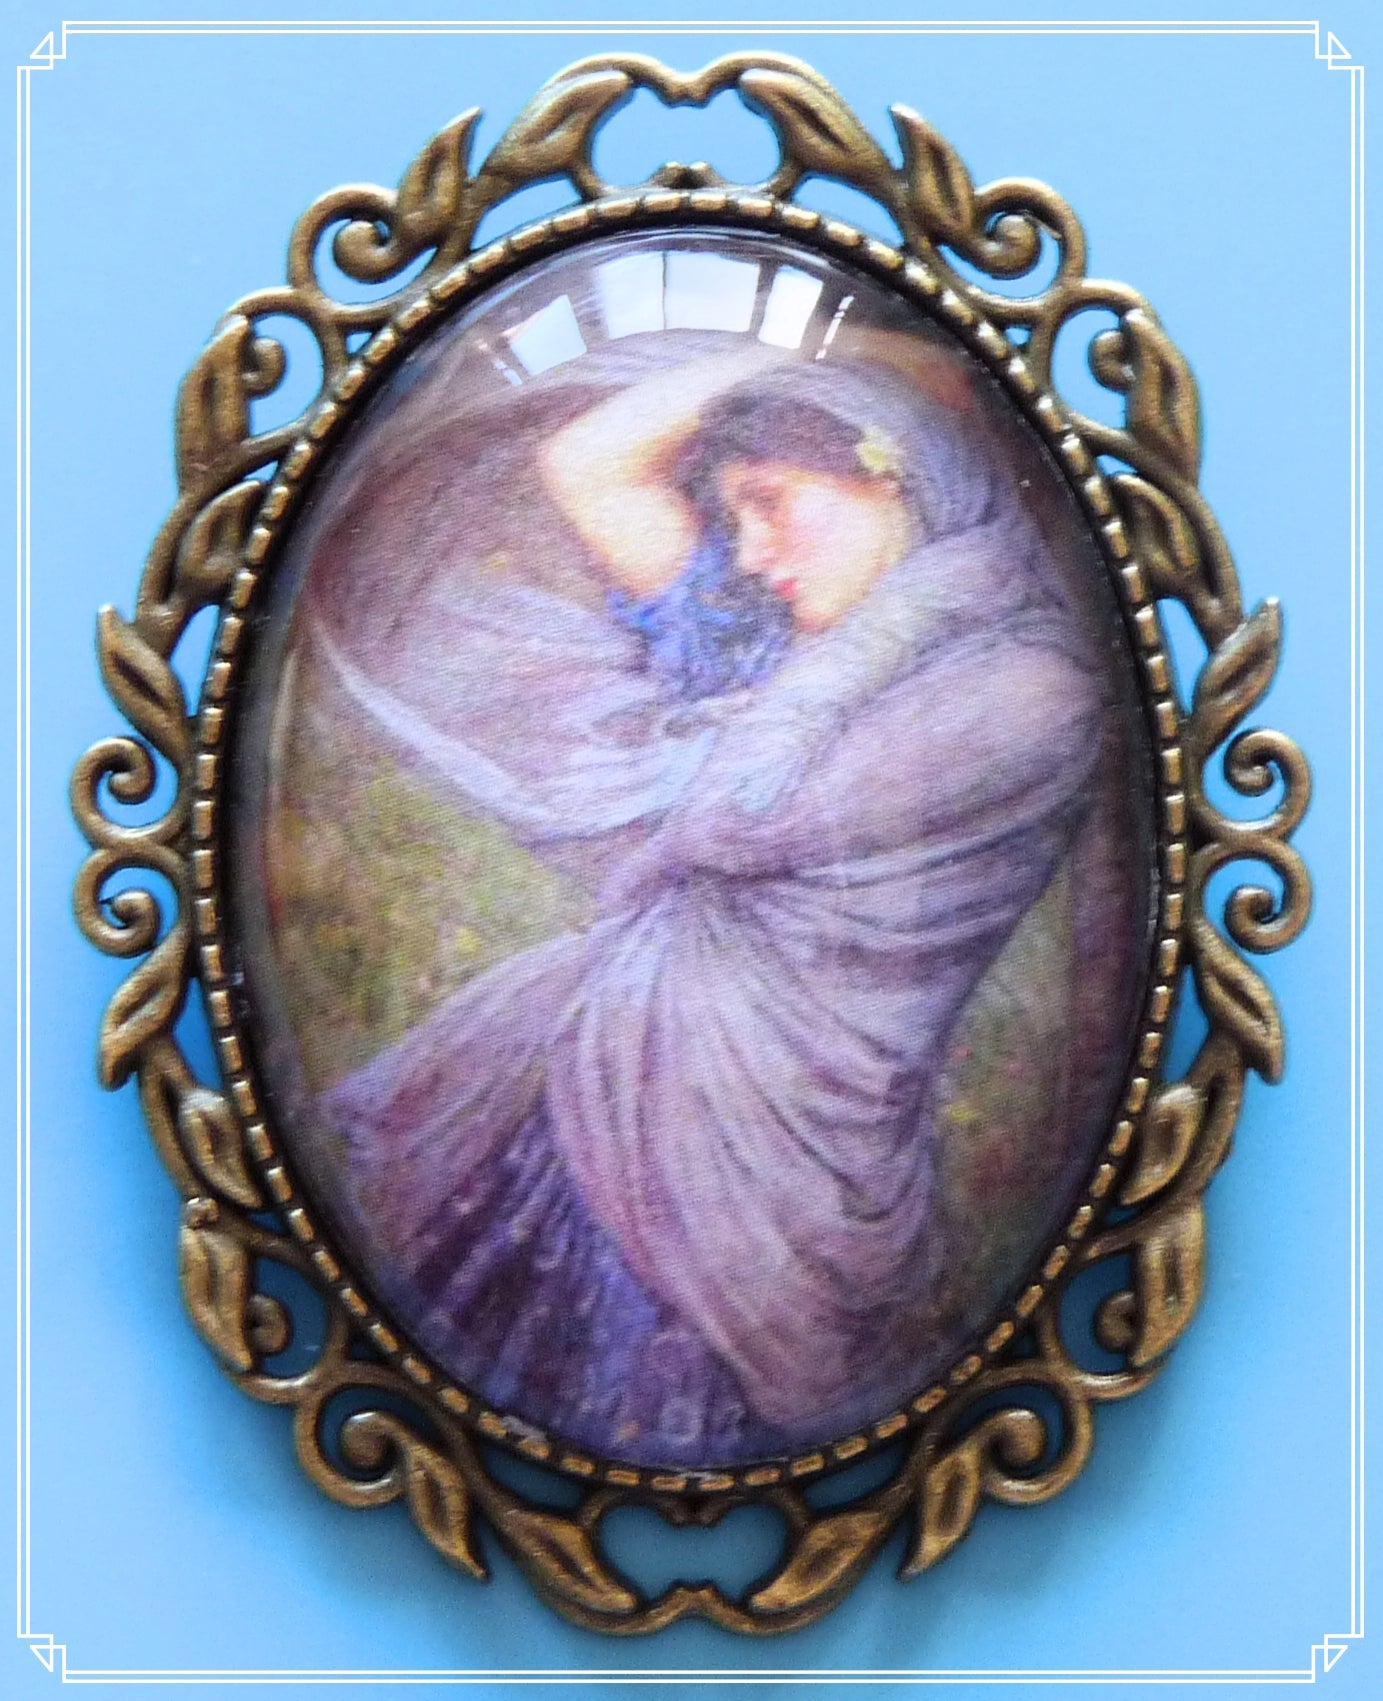 Boreas is a a painting by John William Waterhouse created in 1903.  It is part of my Colour Your World collection.